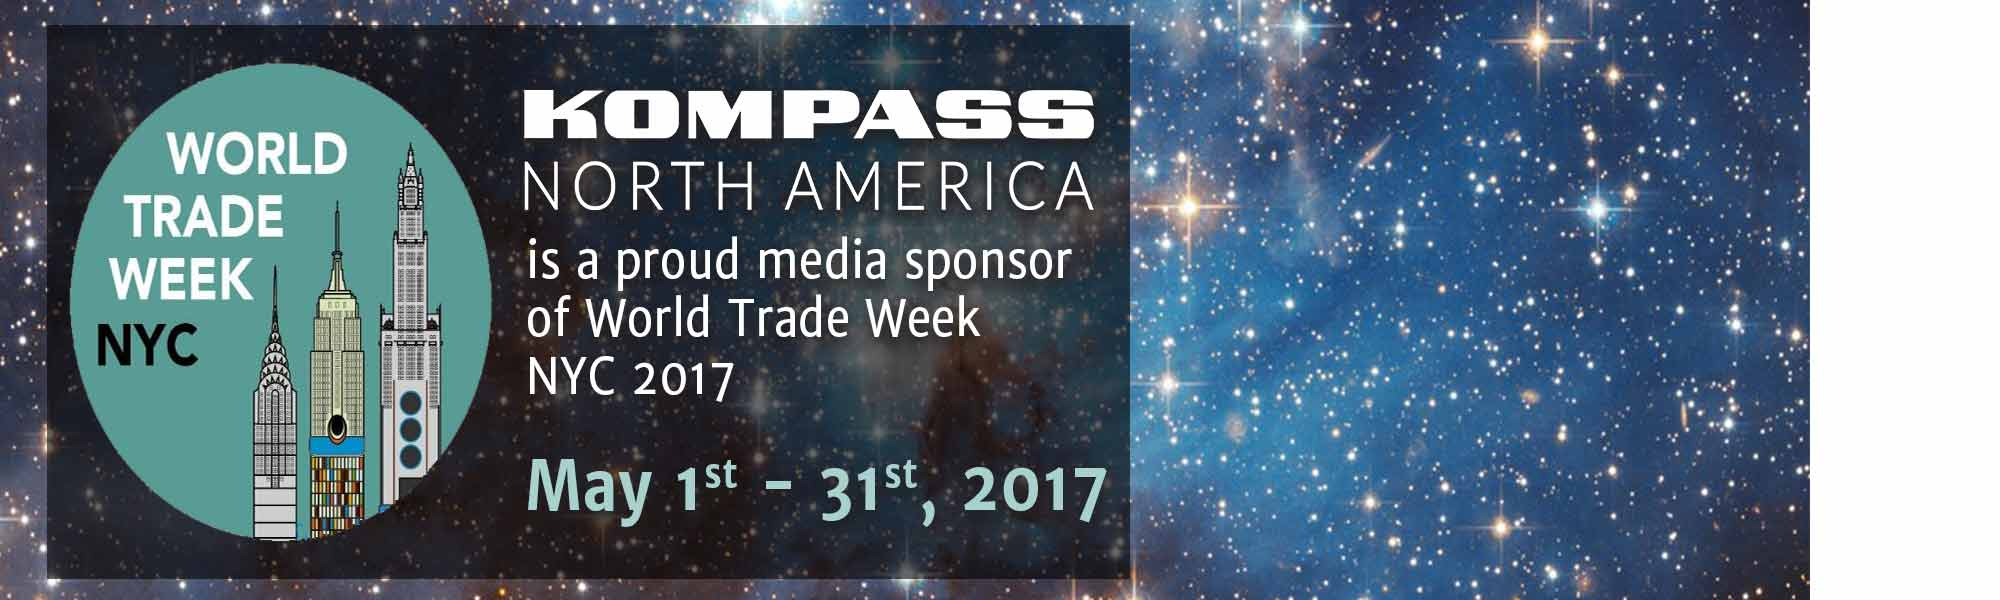 World Trade Week, World Trade Centers Association, Kompass North America